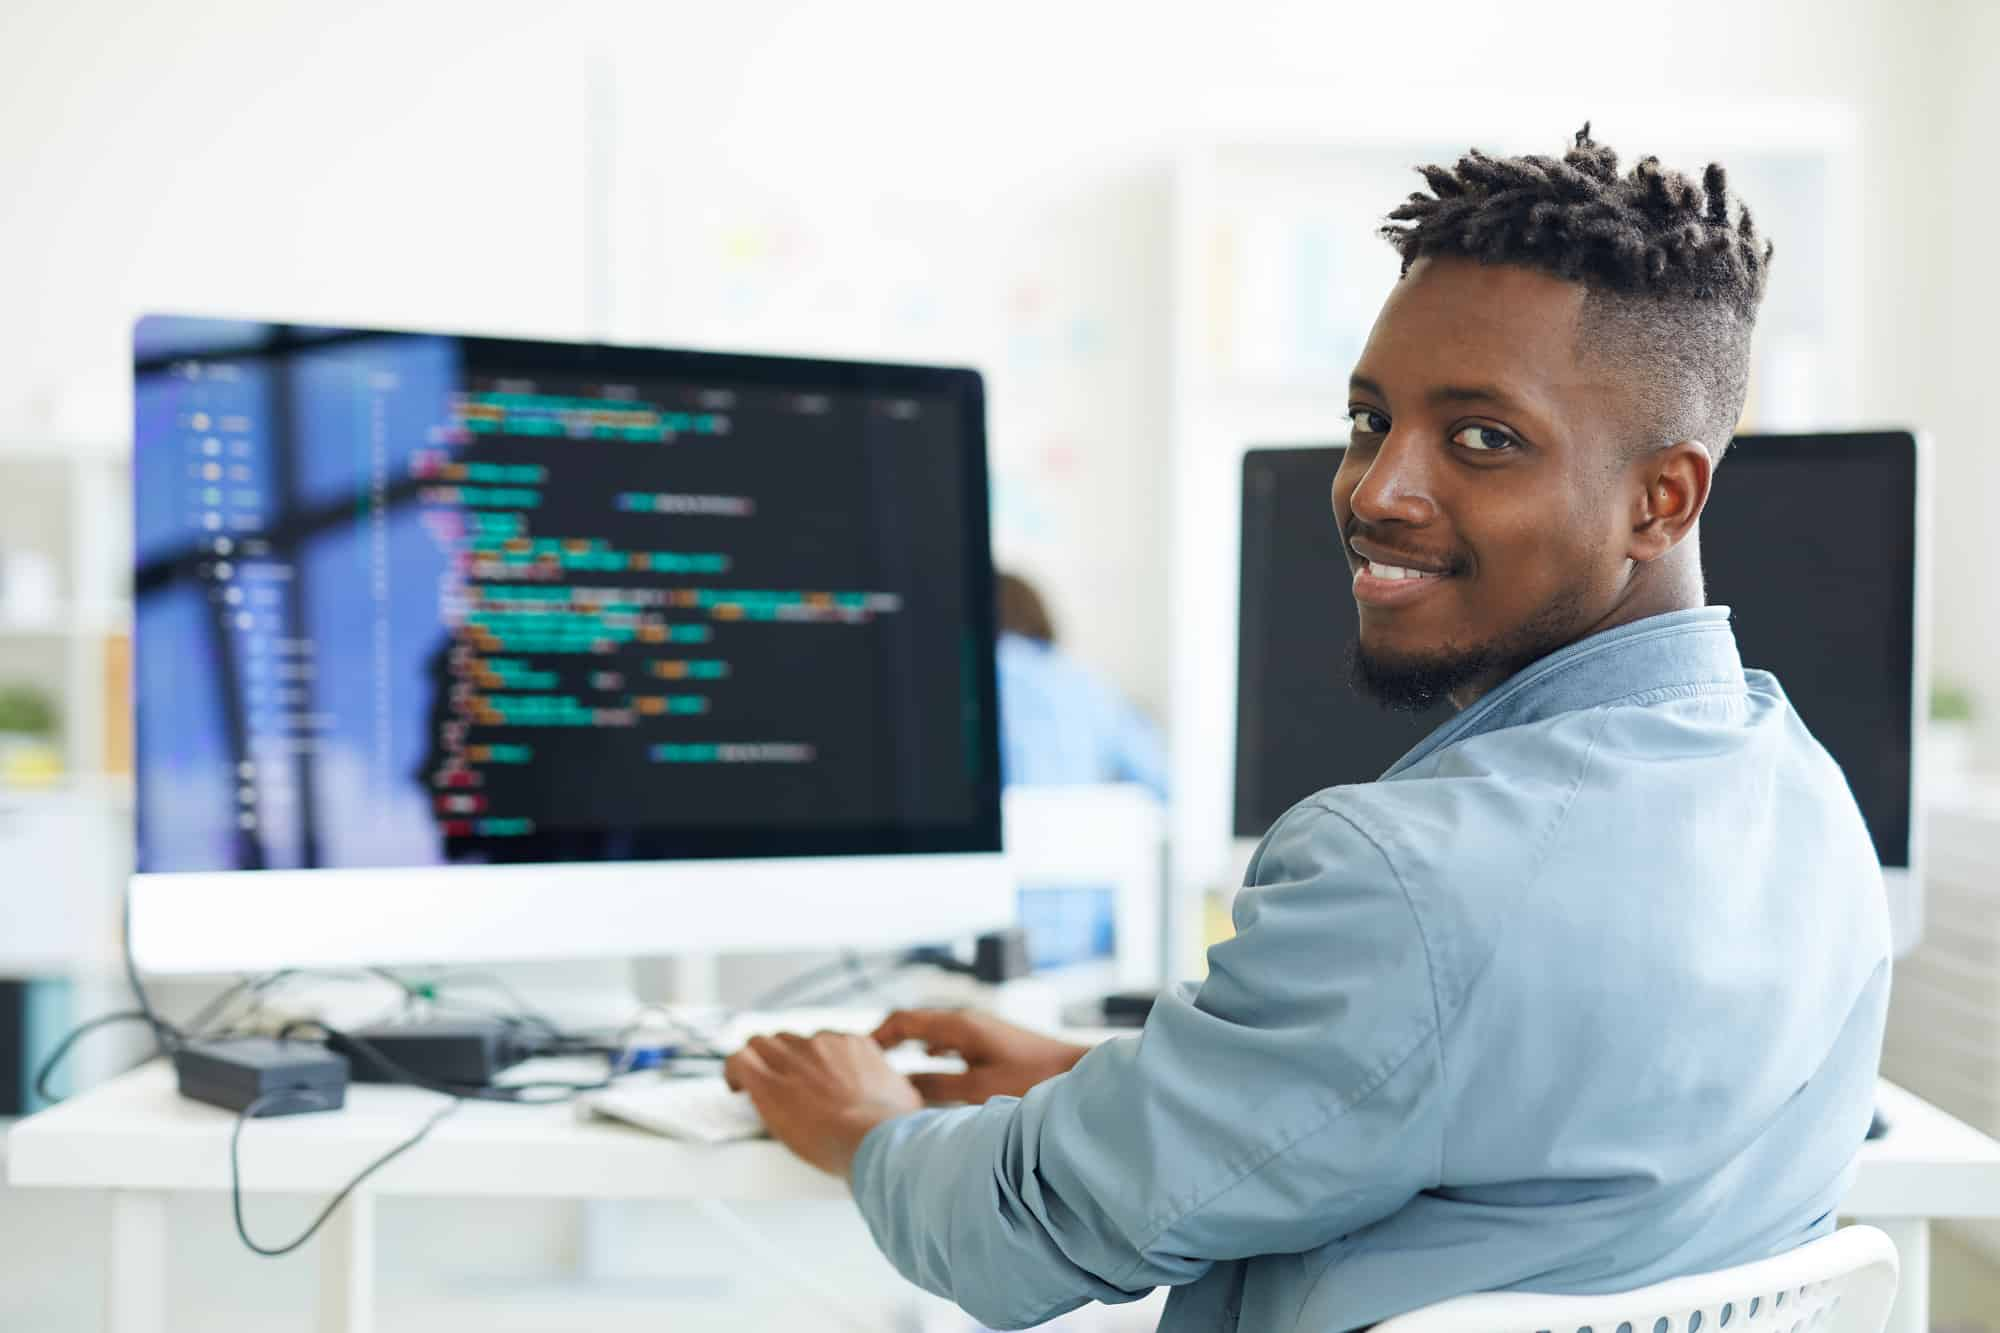 A young man works on an iMac, coding